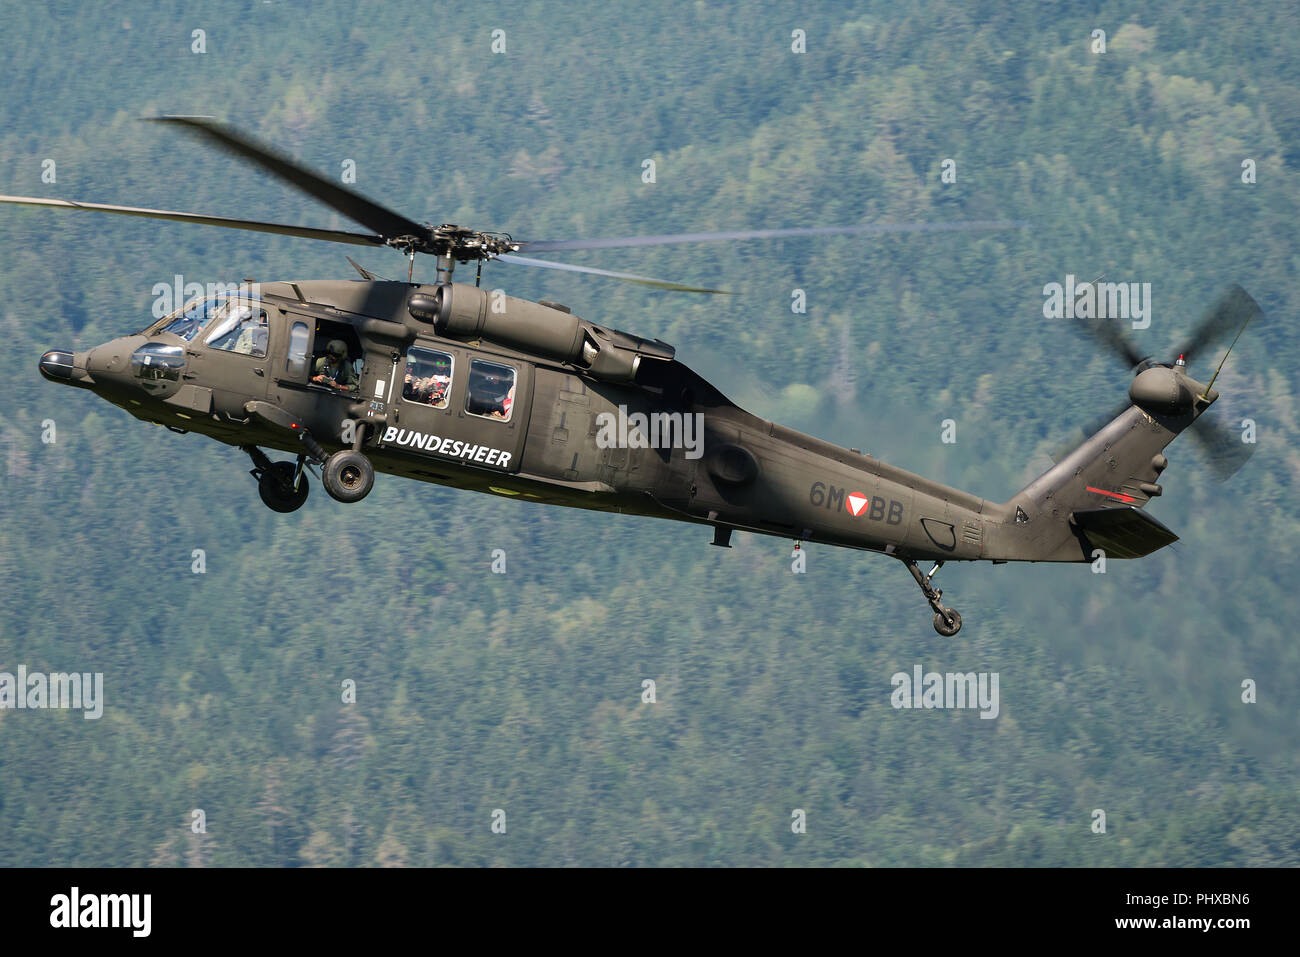 A Sikorsky S-70 military transport helicopter of the Austrian Air Force. - Stock Image